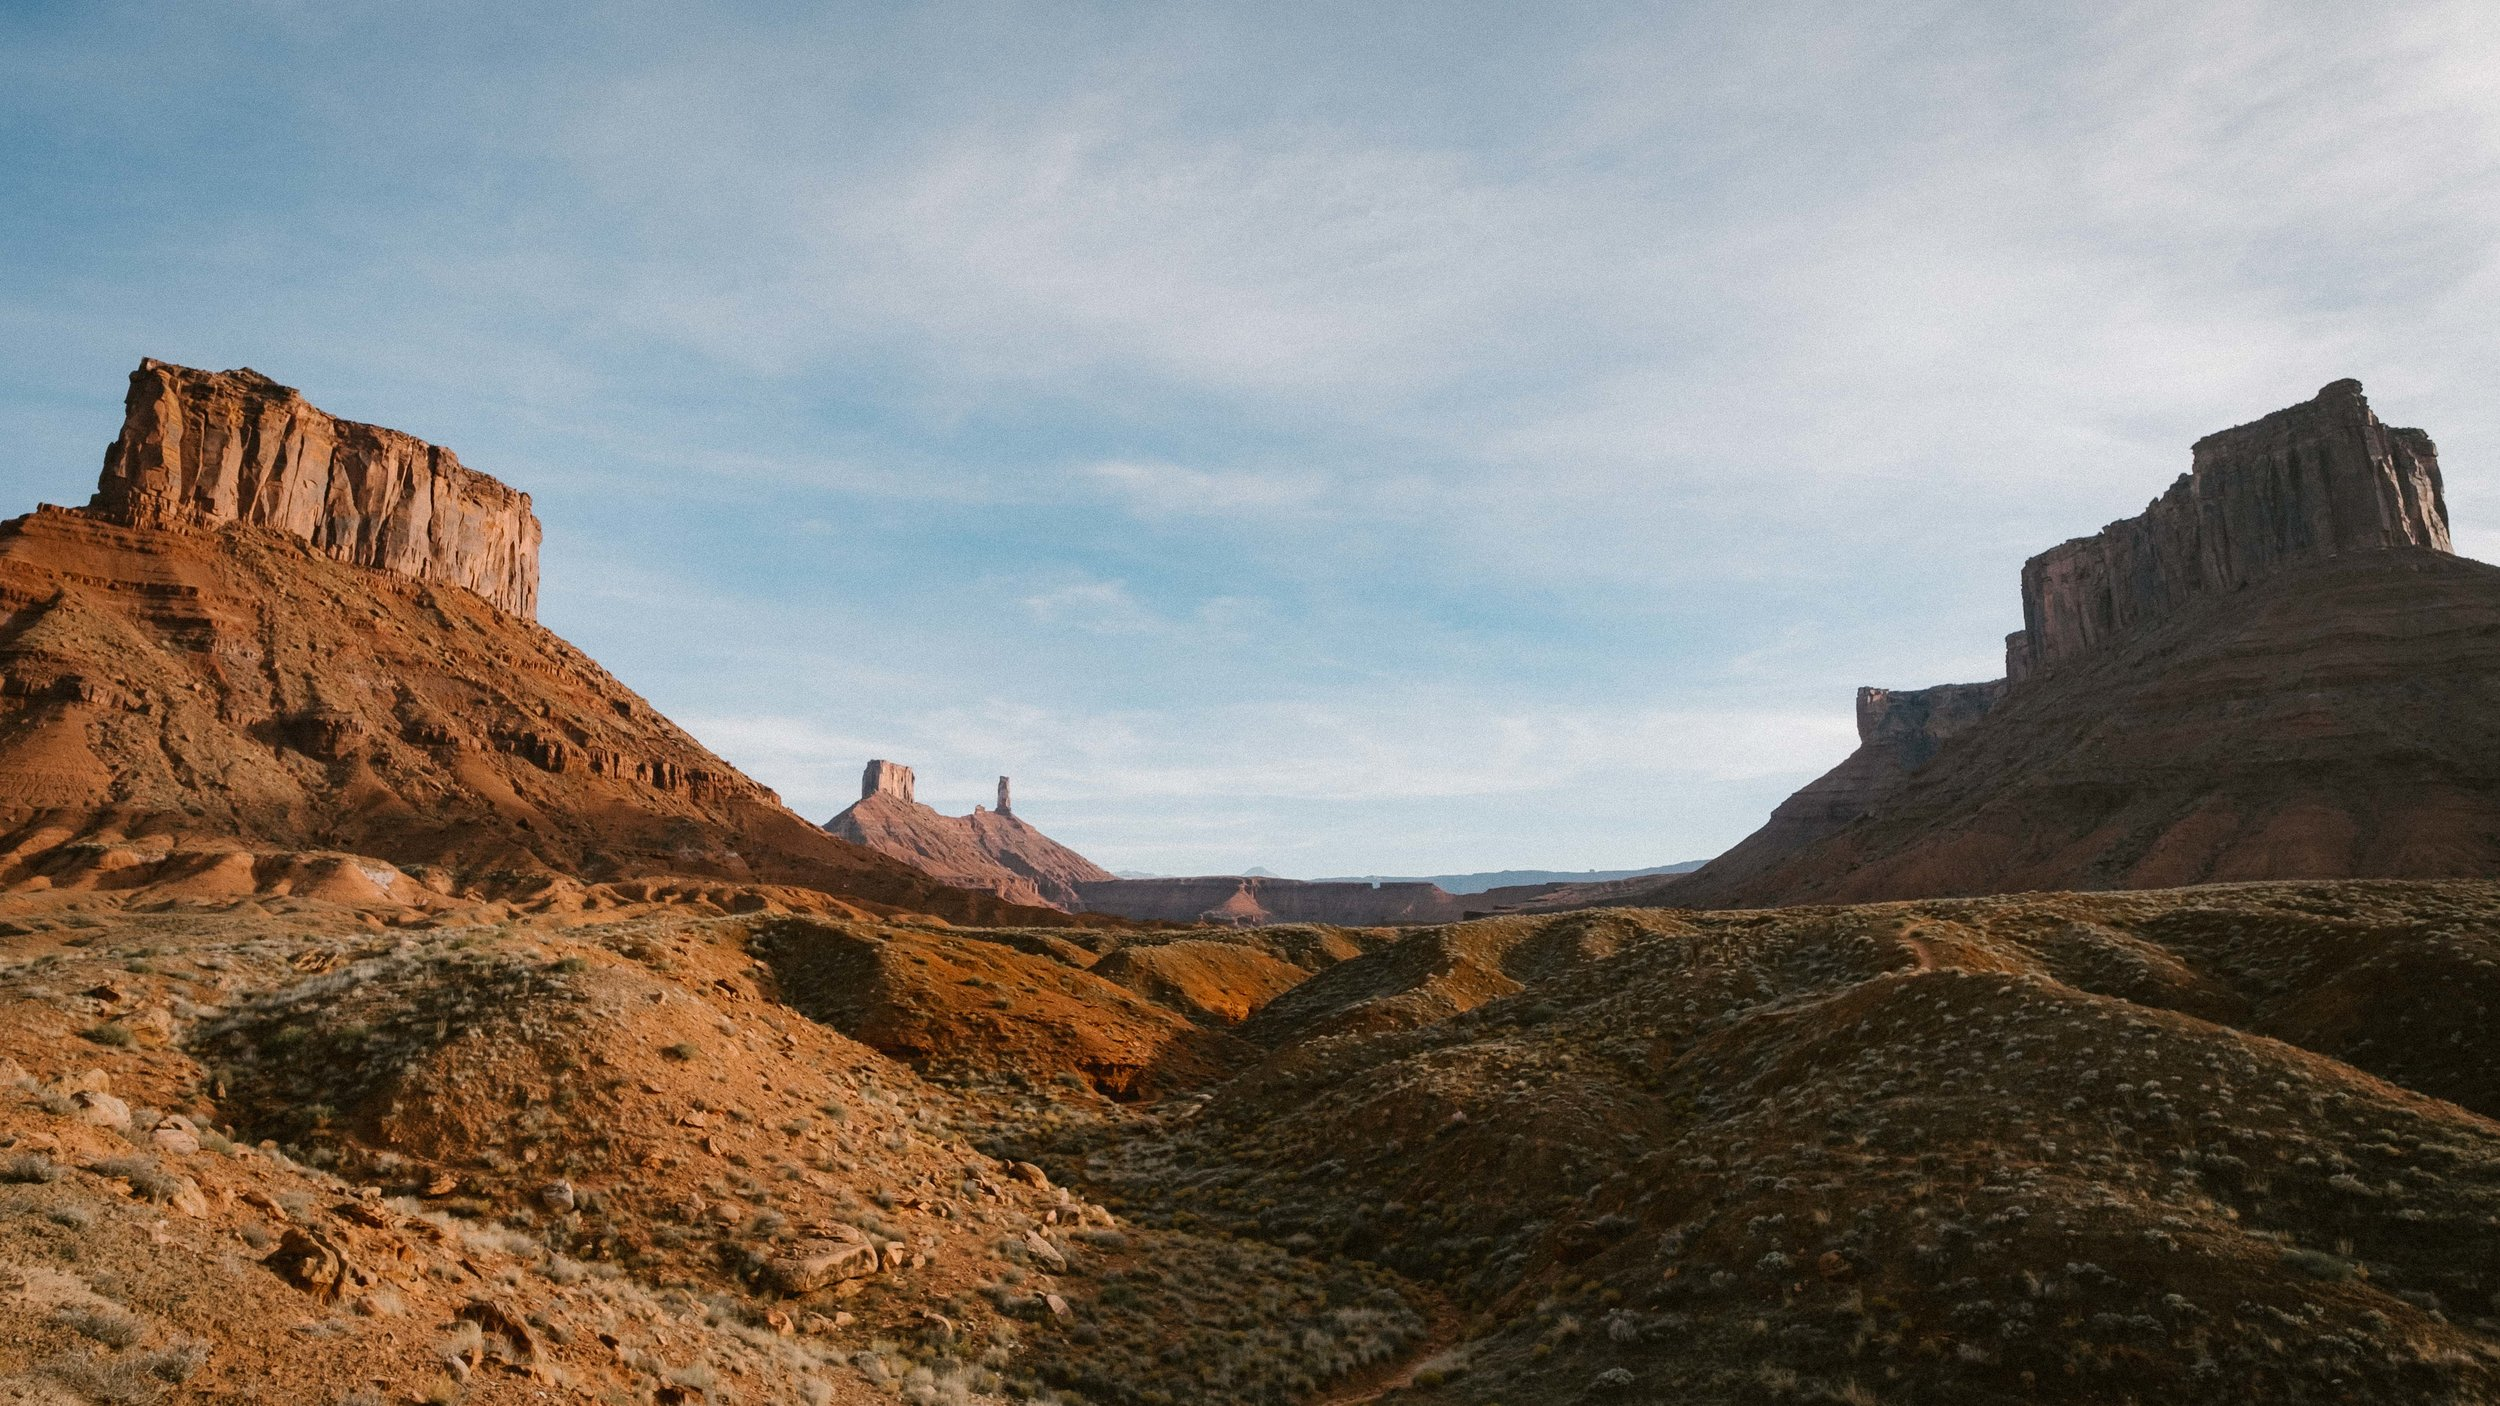 Views of Castleton Tower in the distance on the left and Parriott's Mesa on the right. Fuji XT-2, 14mm f/2.8 Lens